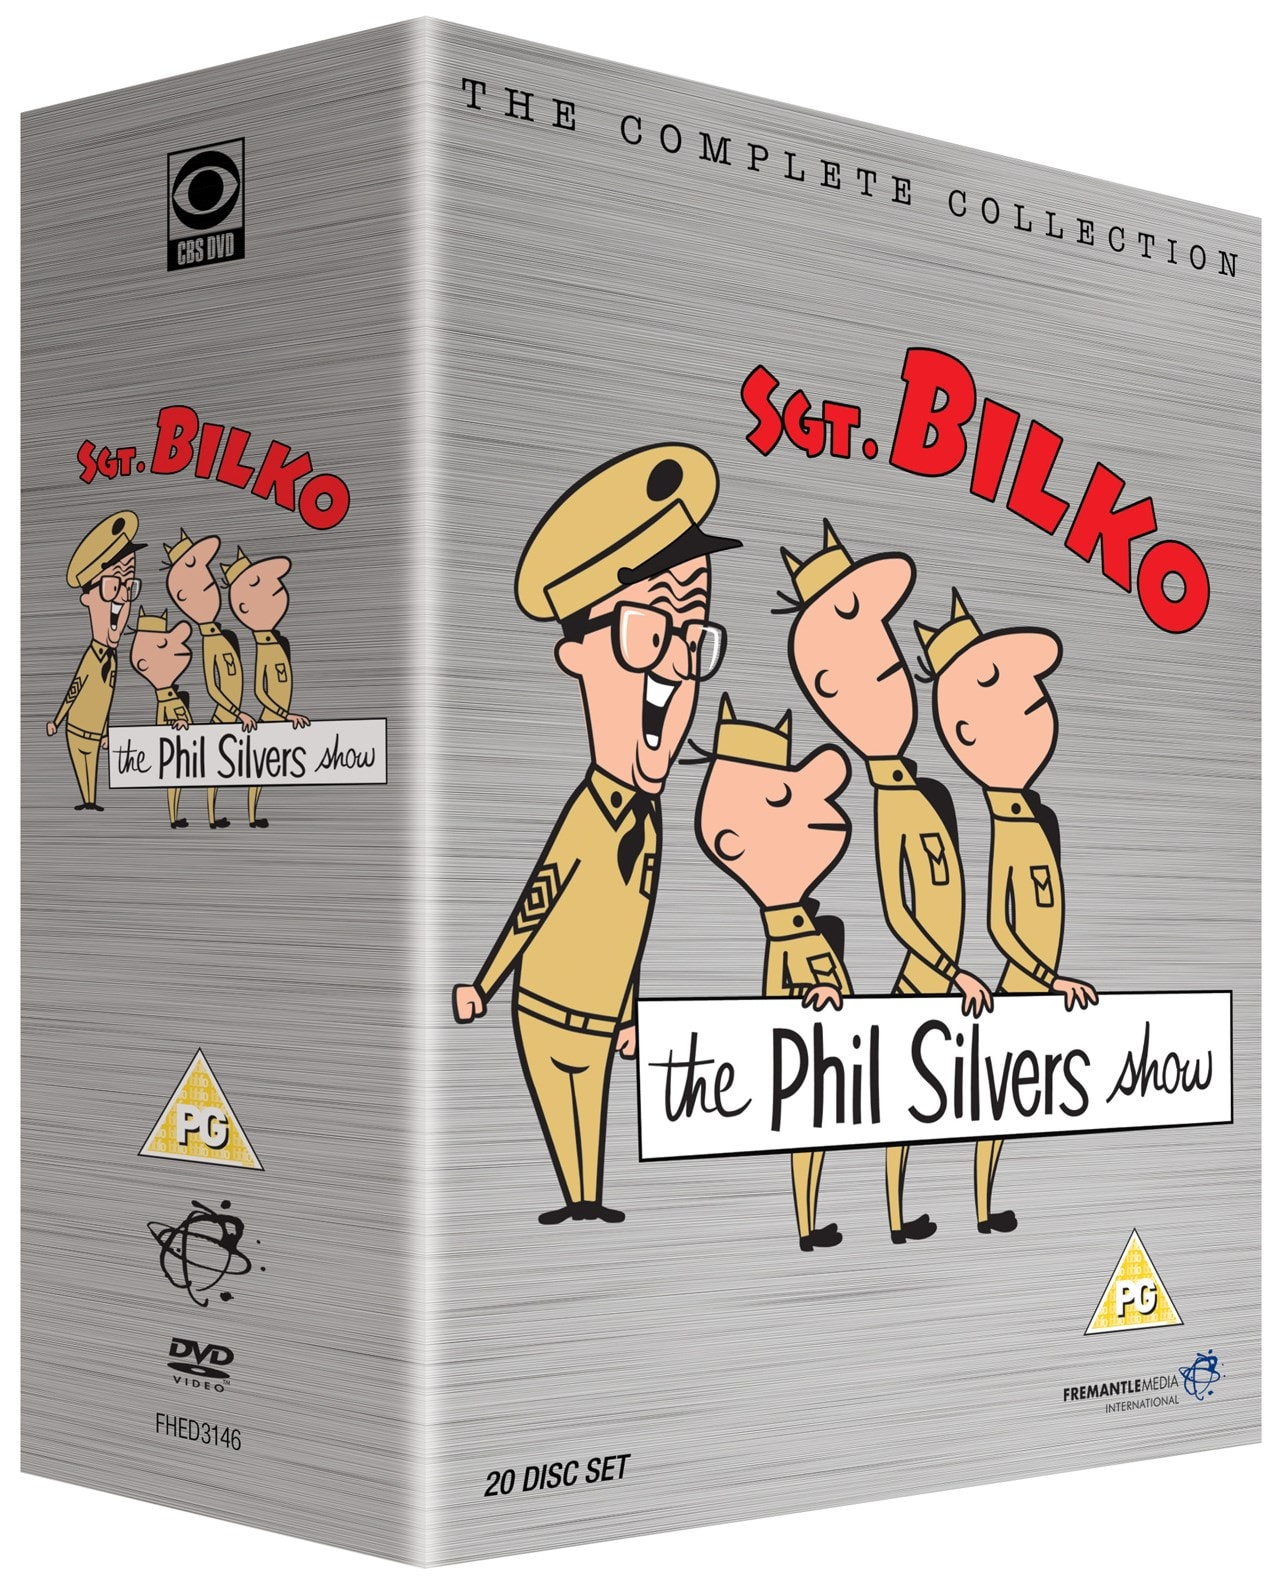 Sergeant Bilko: The Phil Silvers Show - The Complete Collection - 2